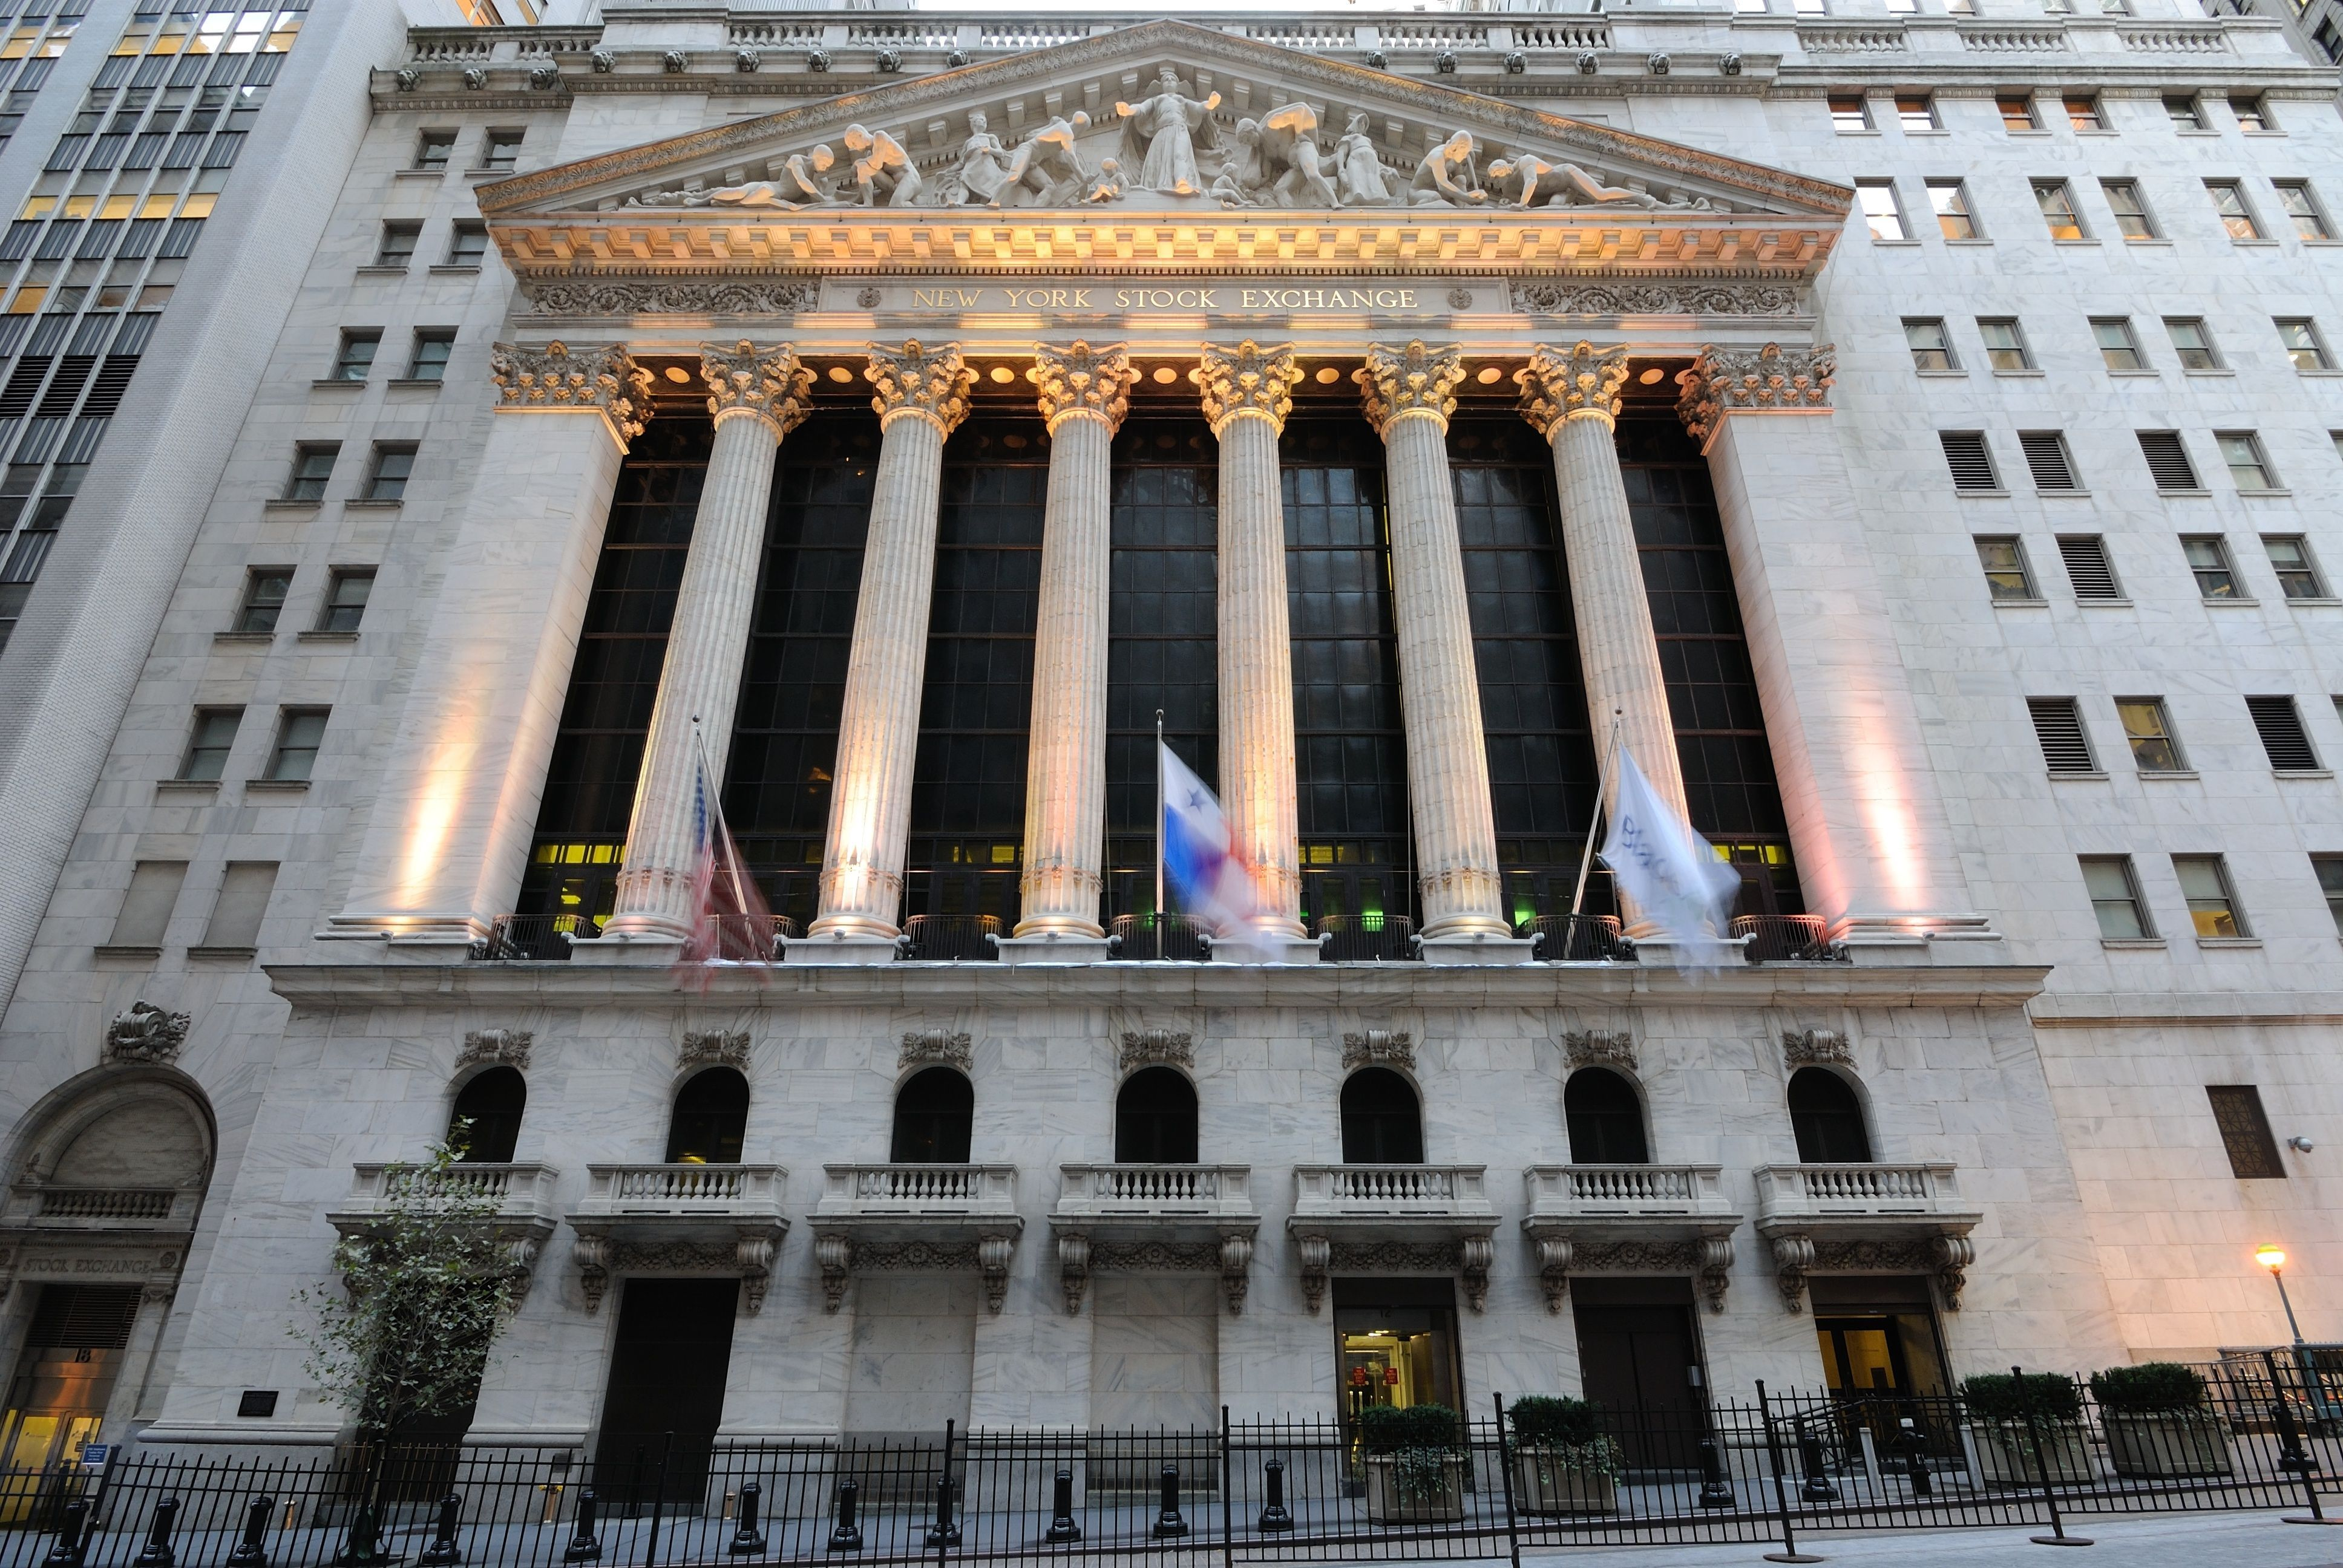 The New York Stock Exchange Building was one of the first